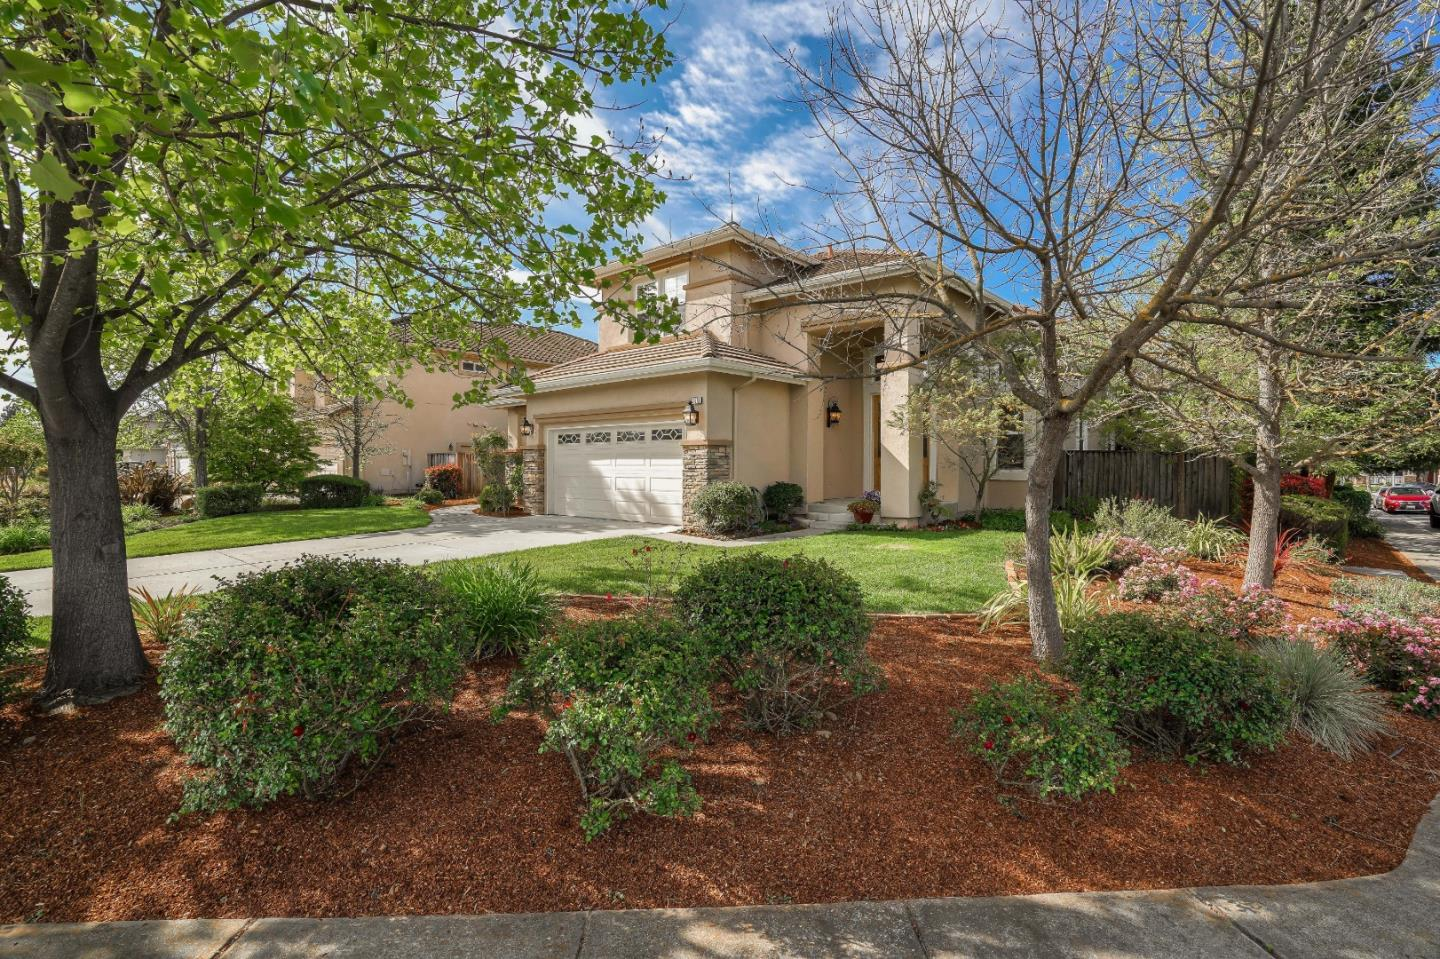 17675 Serene DR, Morgan Hill in Santa Clara County, CA 95037 Home for Sale